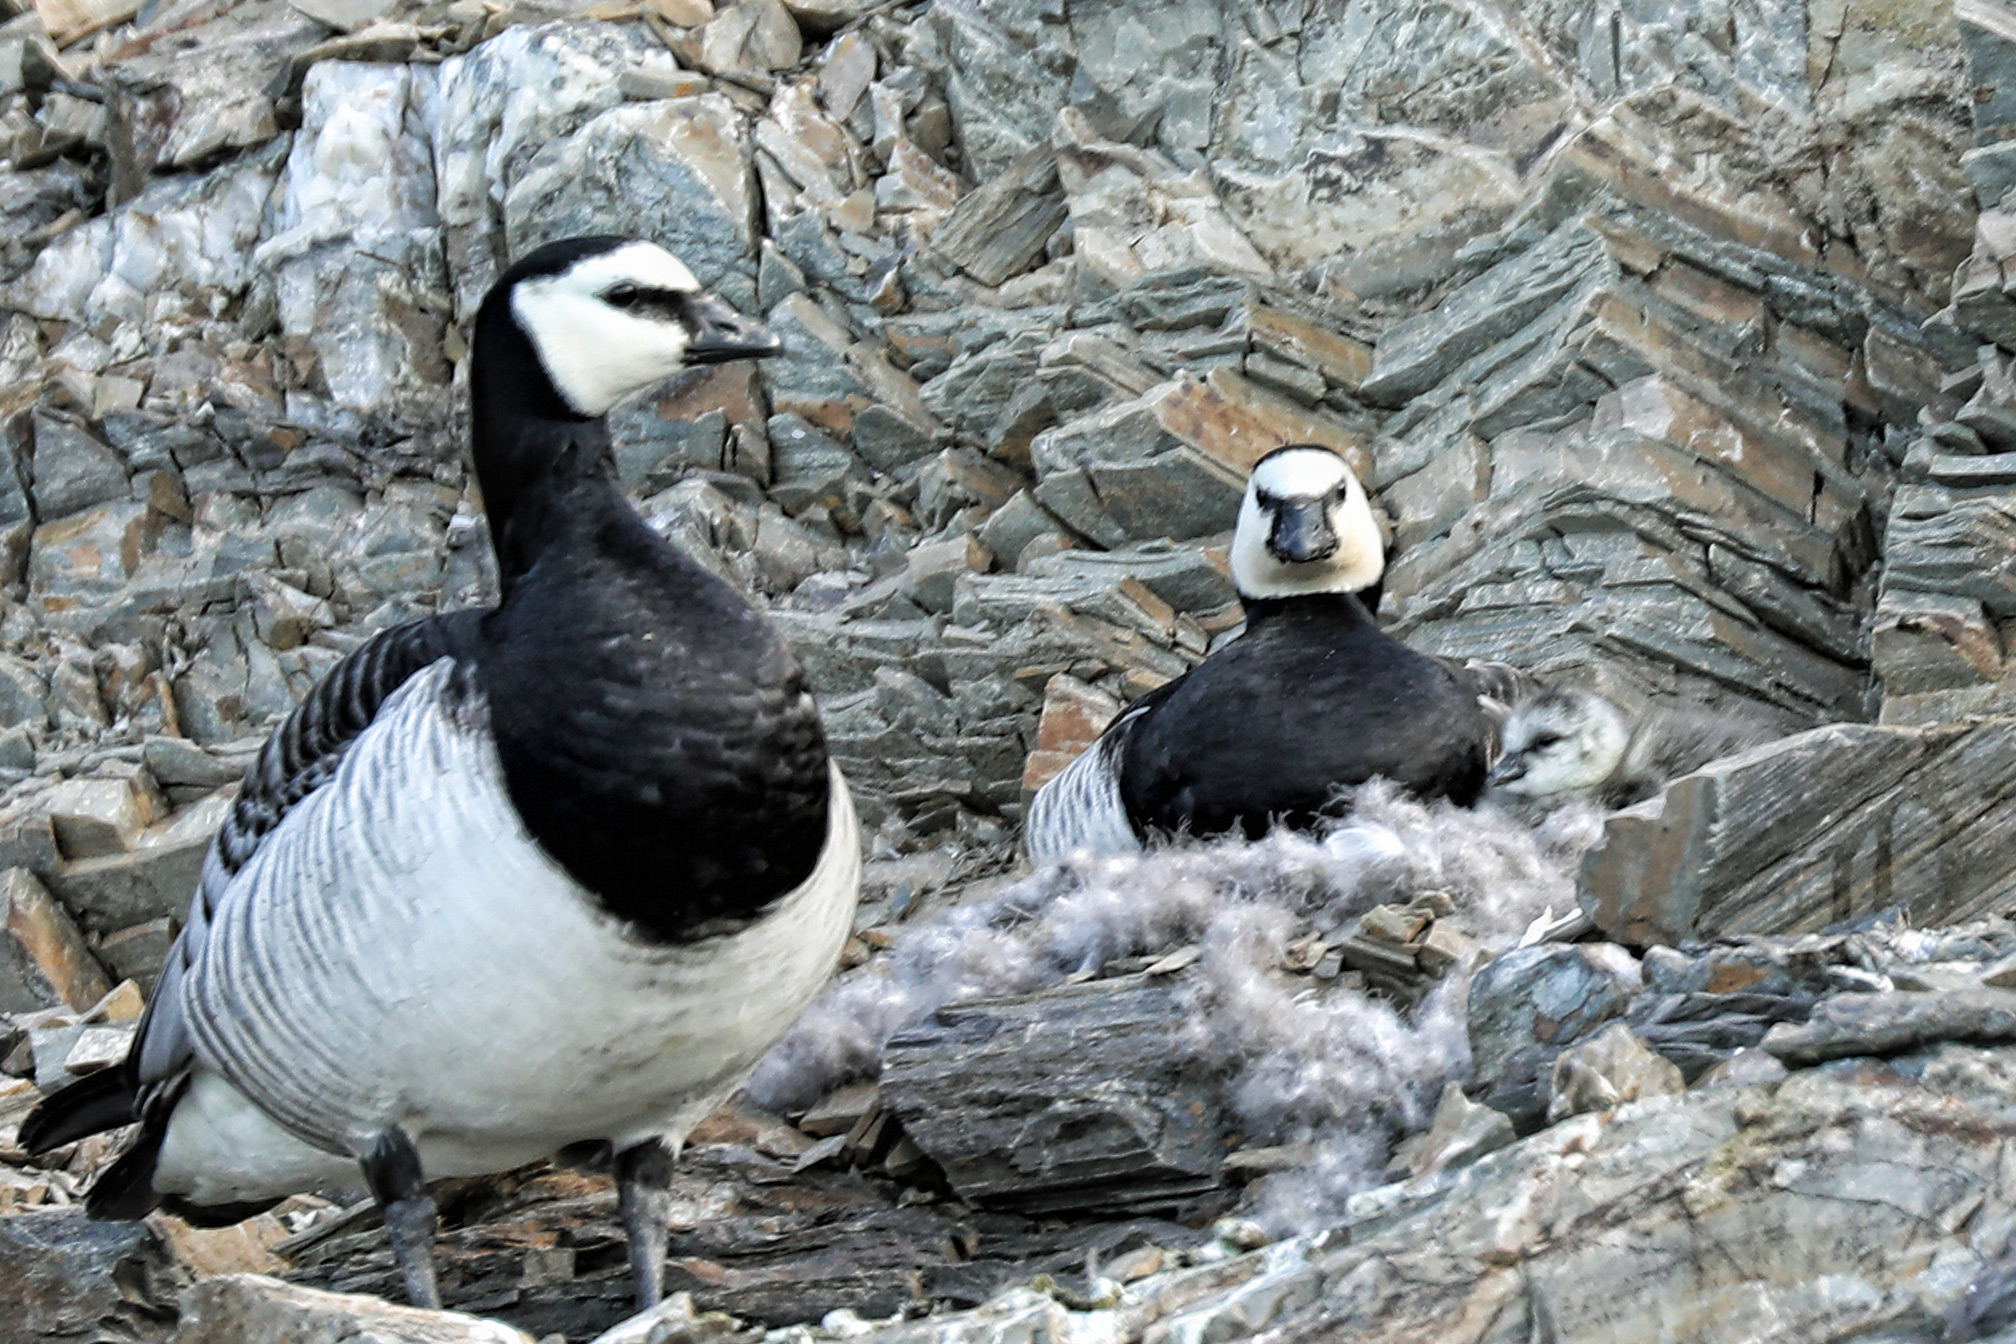 Barnacle geese with a chick (in nest, far right).